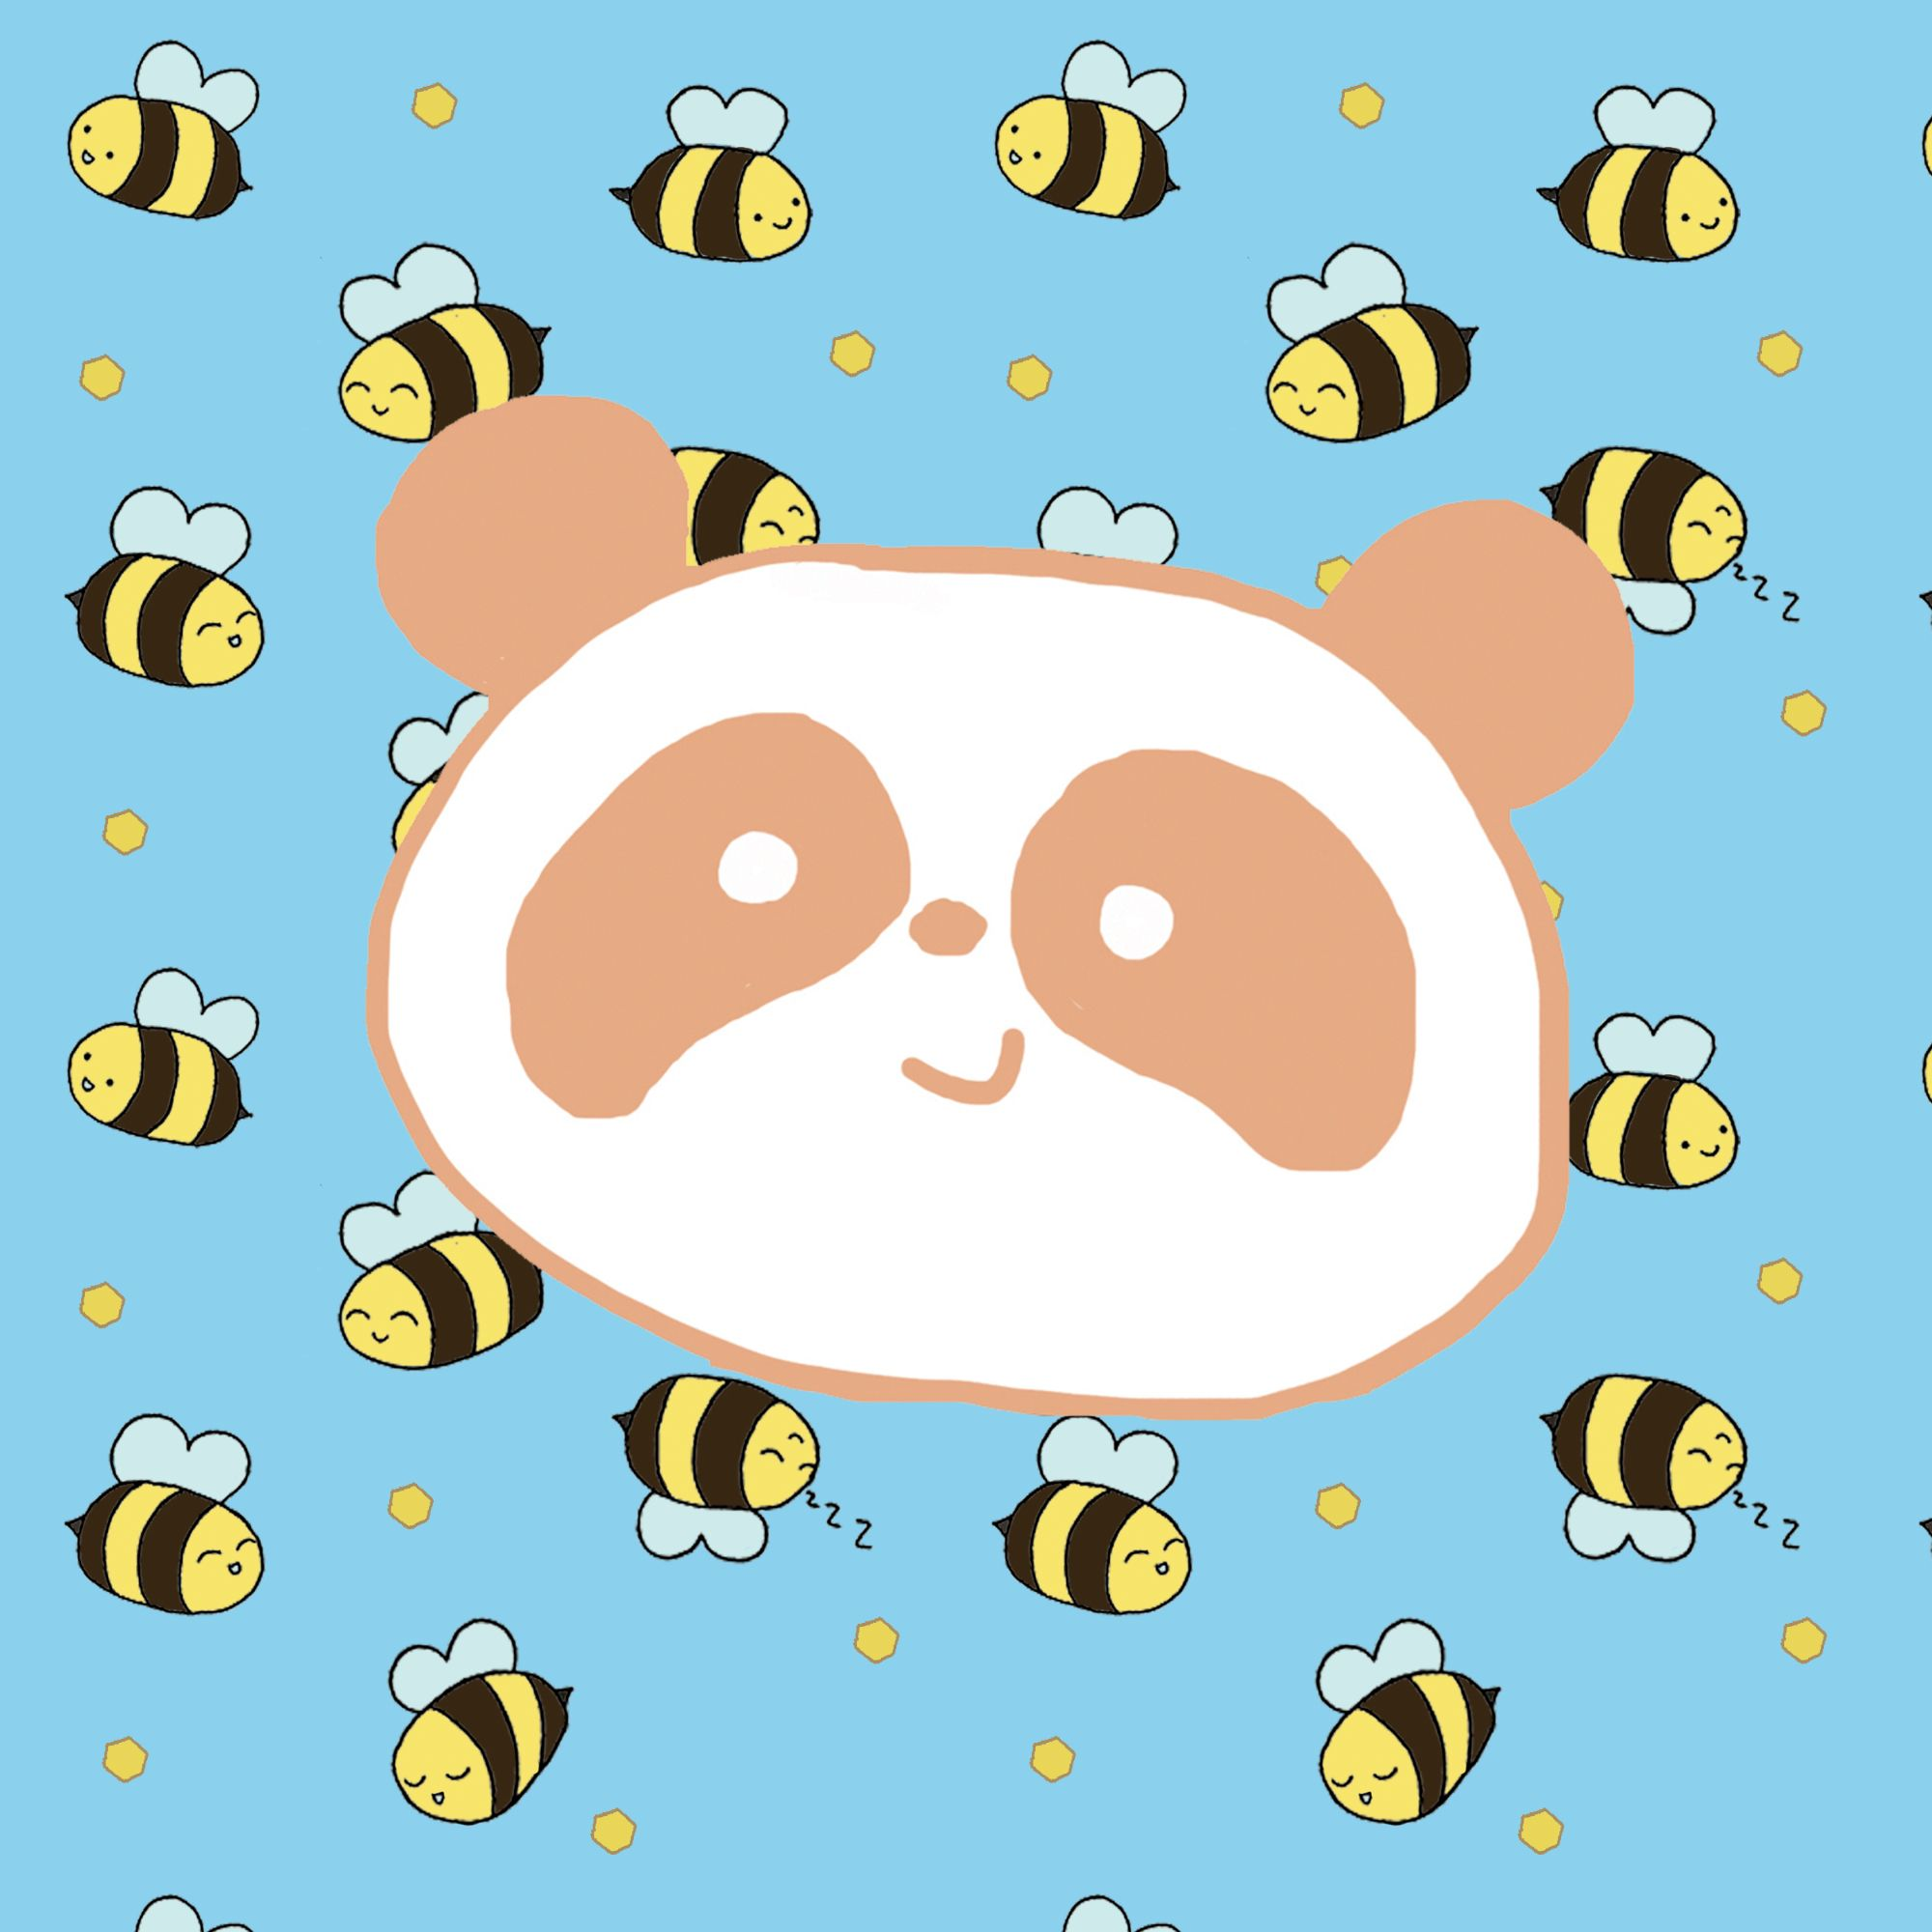 A peach panda head on a background of a repeat pattern of bees on a blue background